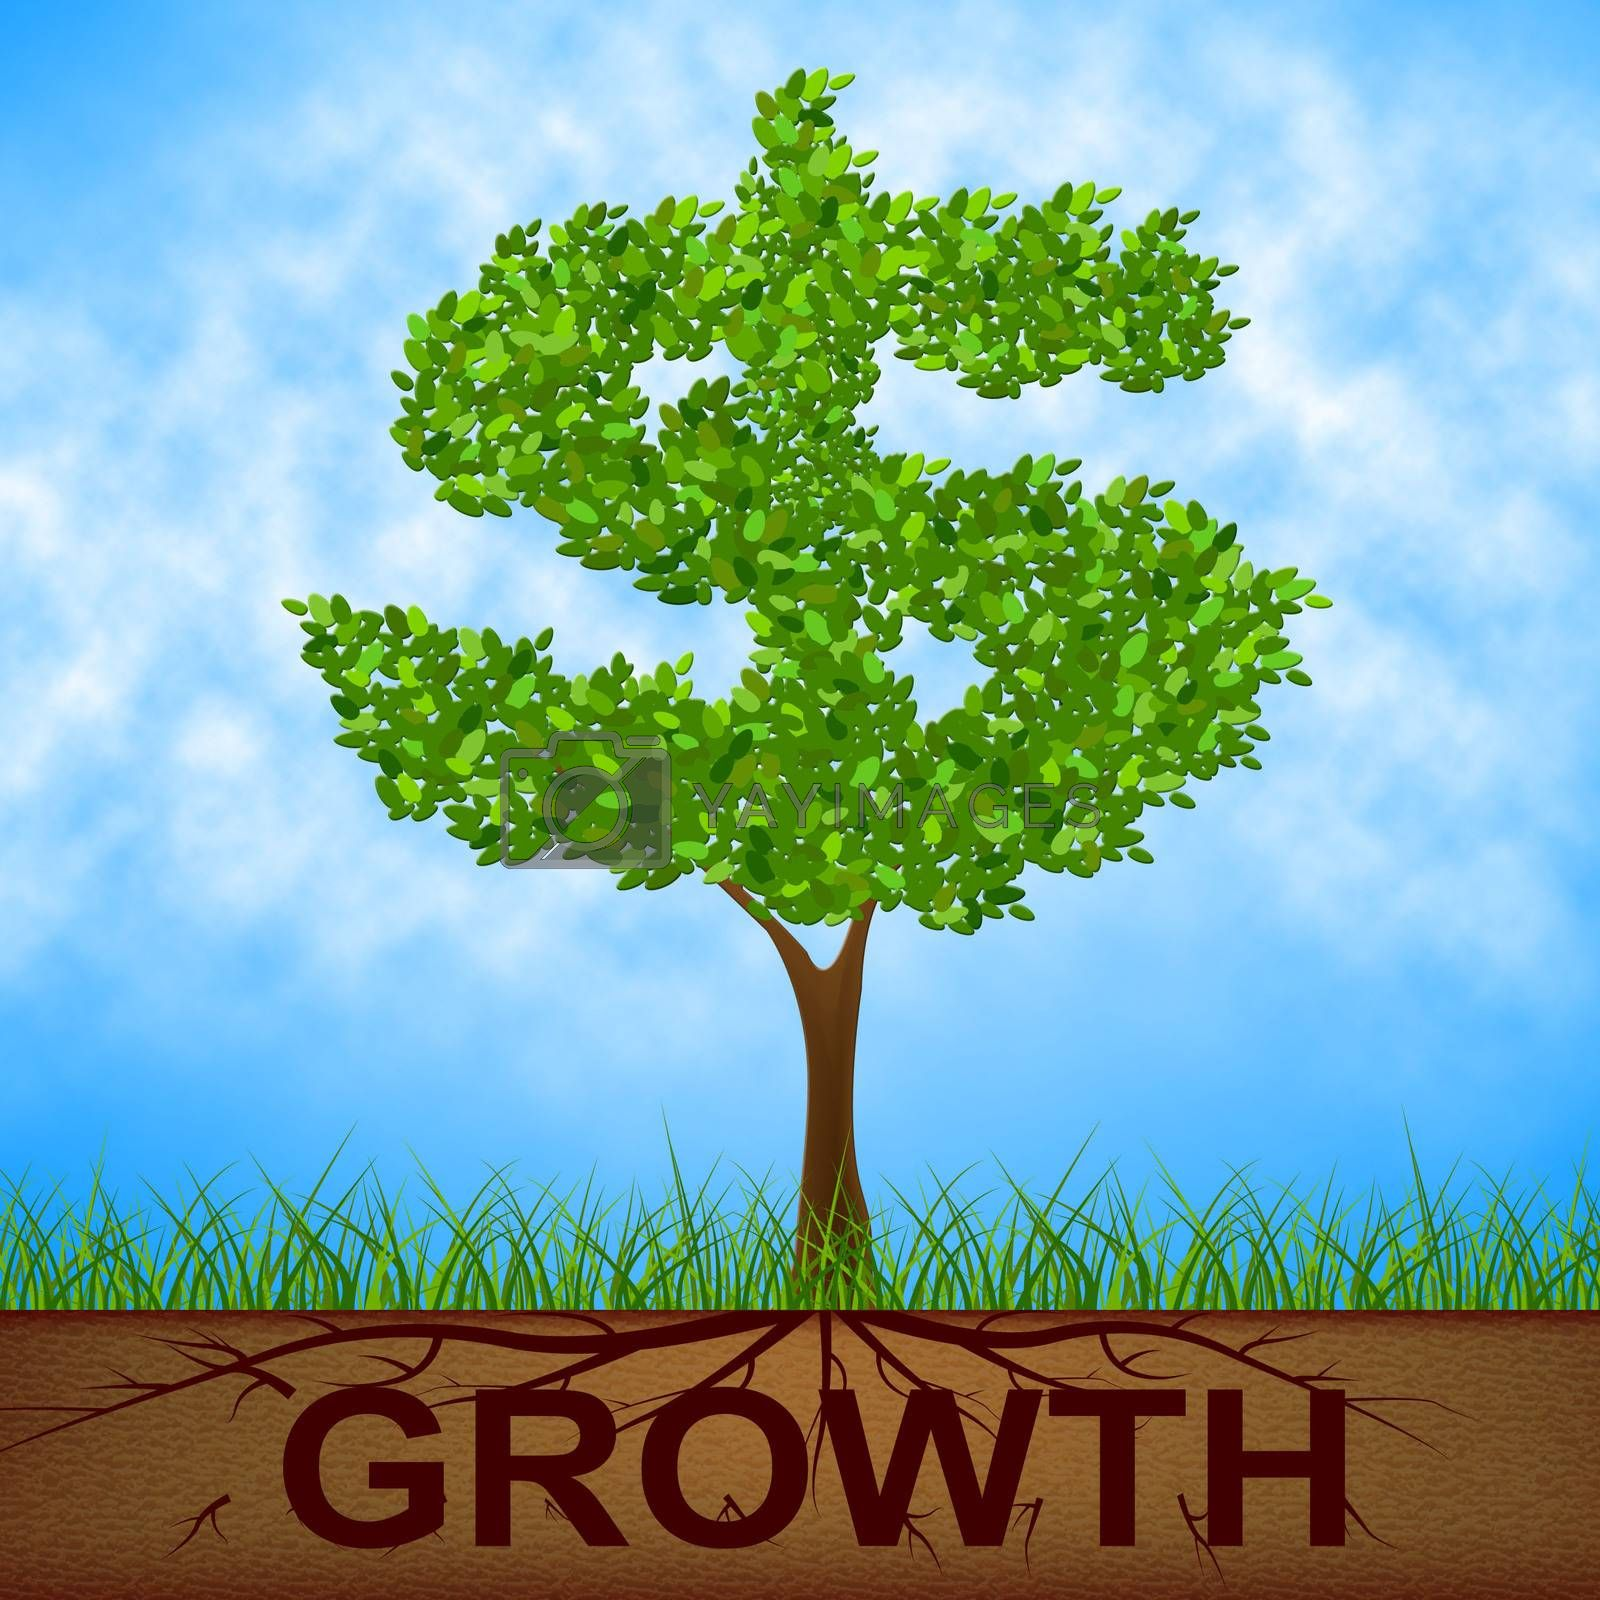 Growth Tree Means American Dollars And Banking by stuartmiles